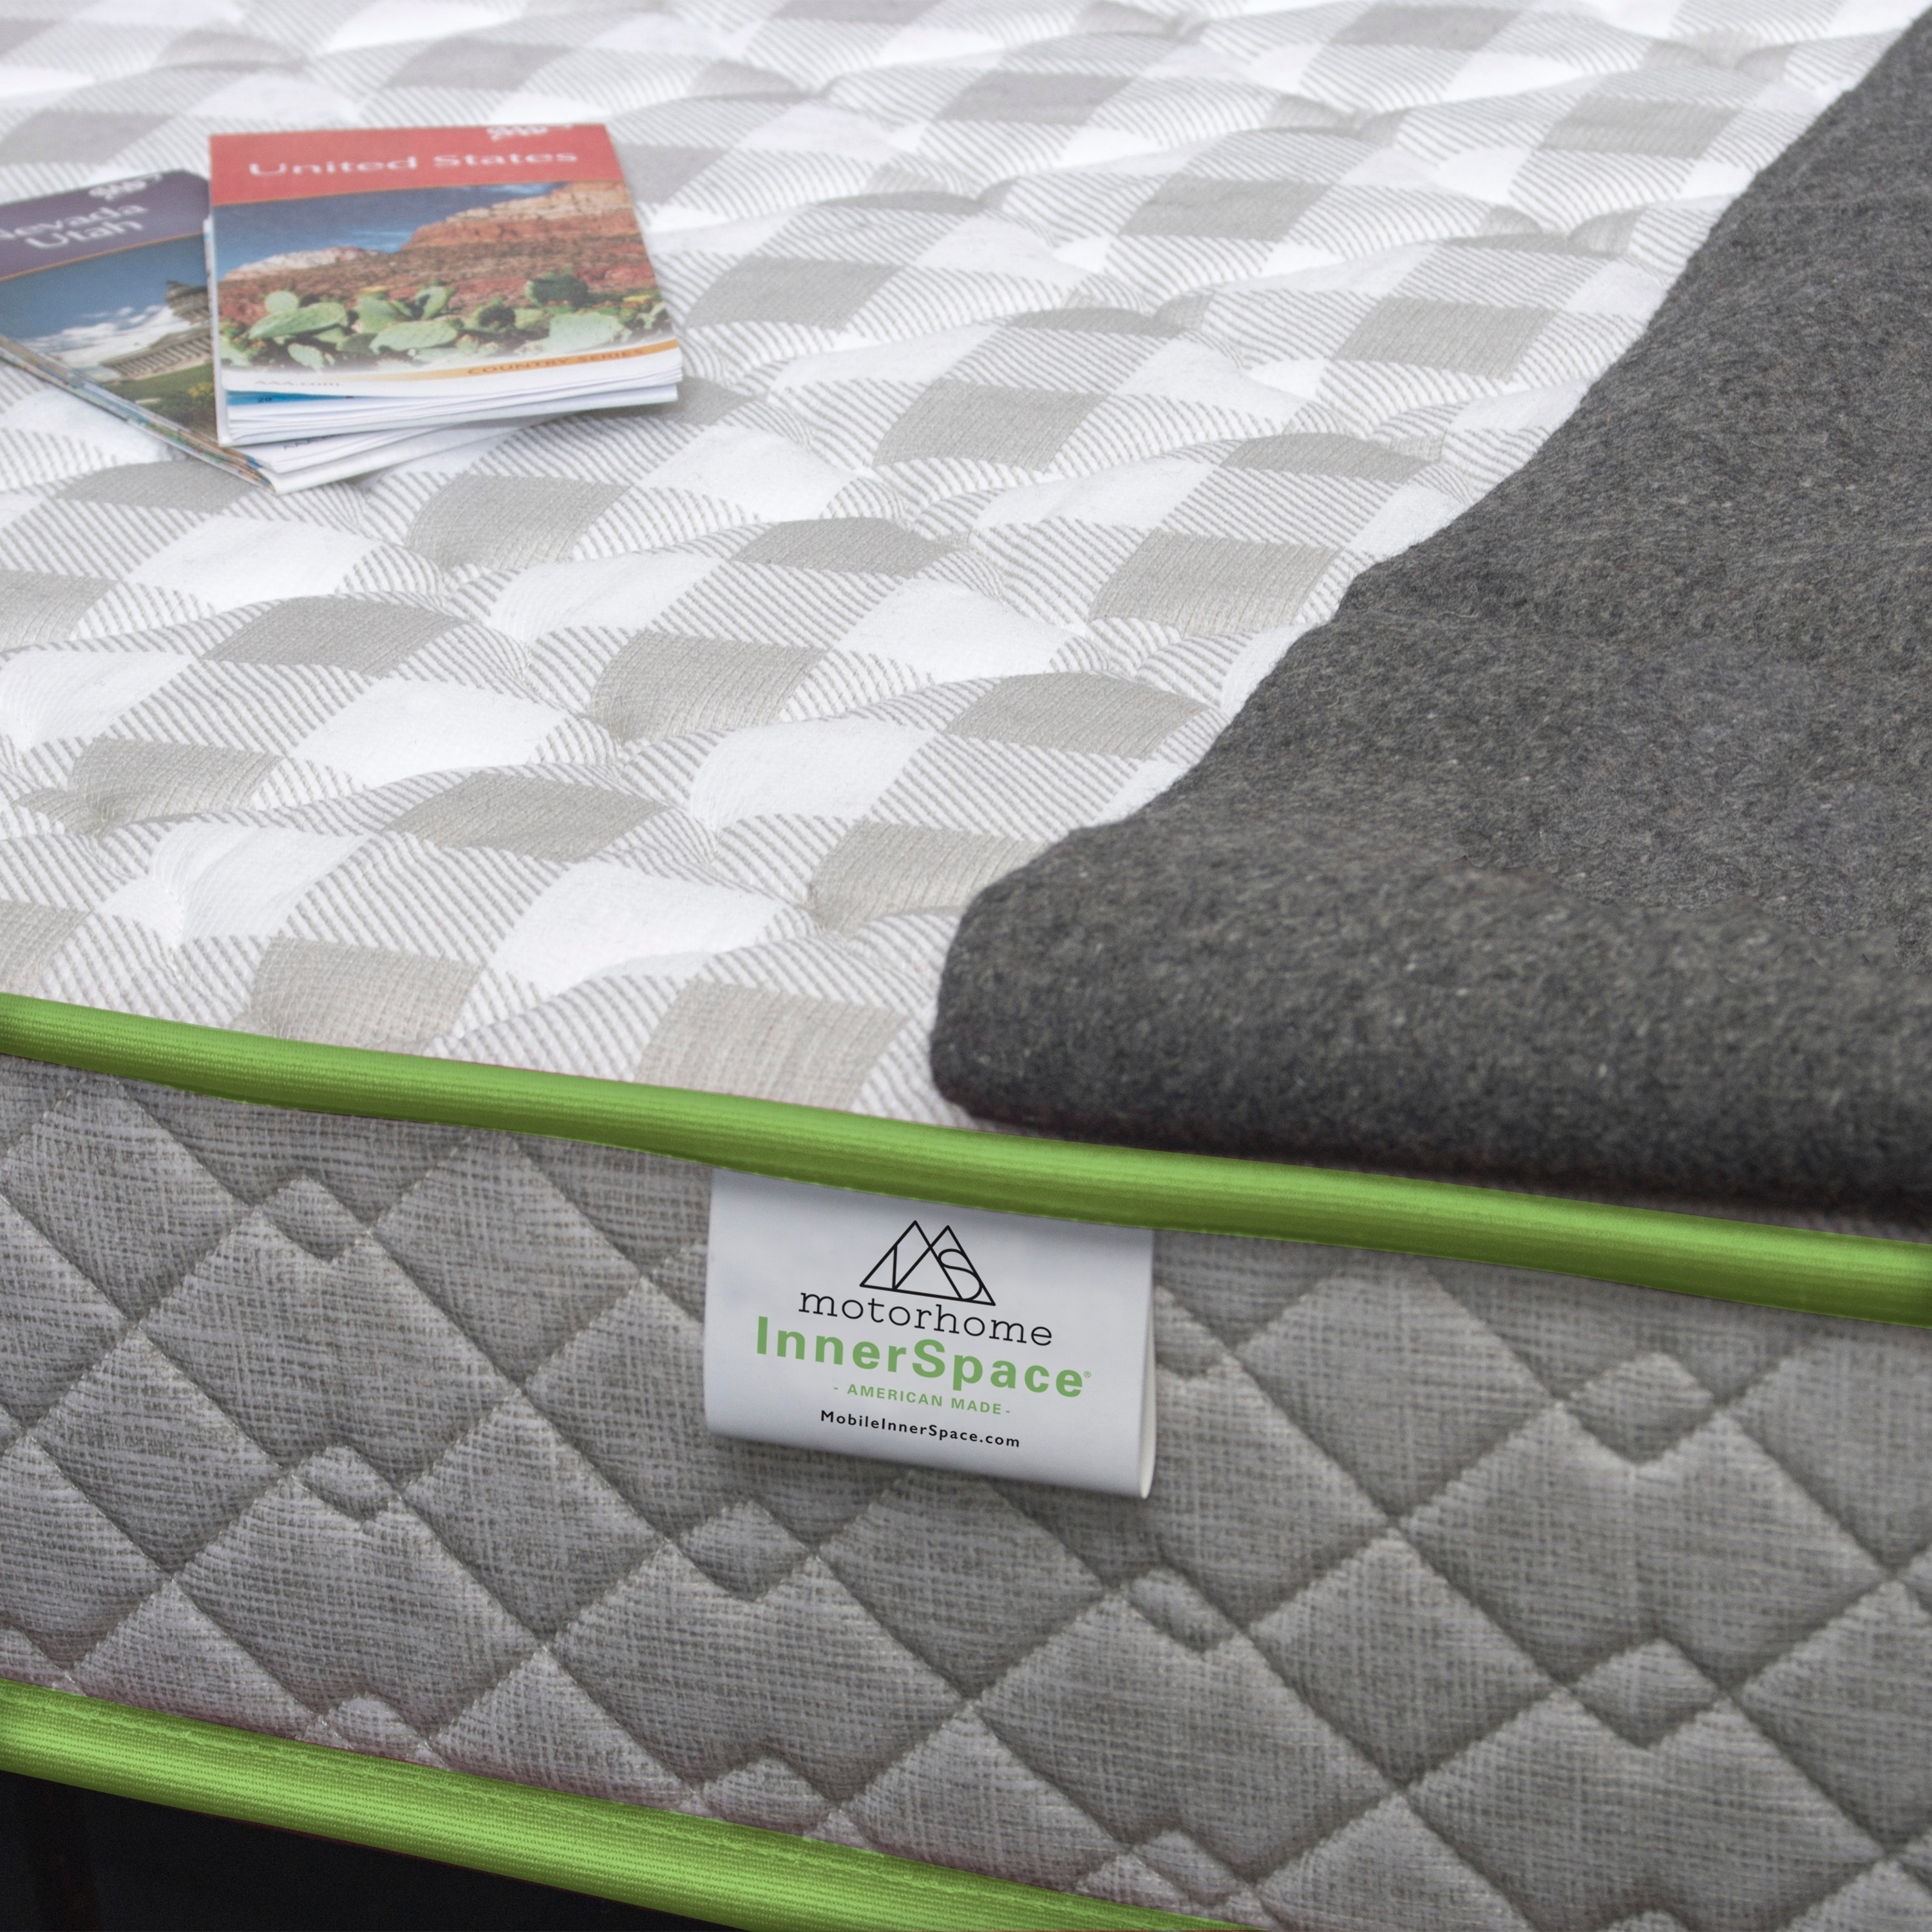 Motorhome Innerspace Travel Comfort 5 5 Rv Mattress In A Box On Sale Overstock 10202448